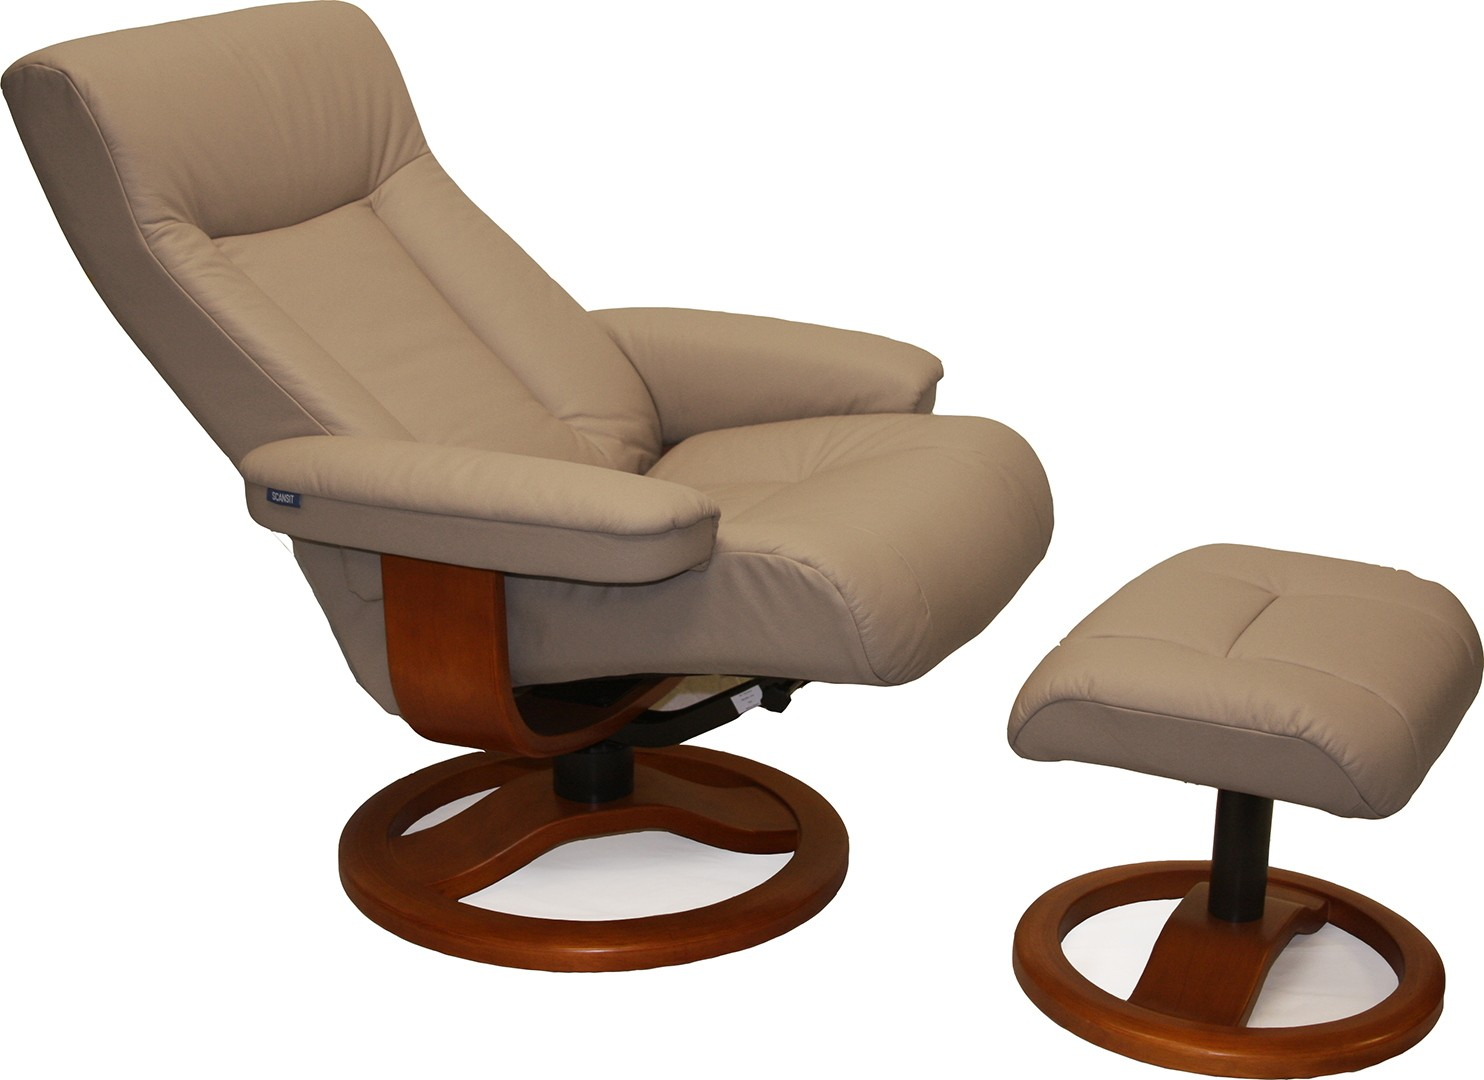 Hjellegjerde scansit 110 chair large for Best chair and ottoman